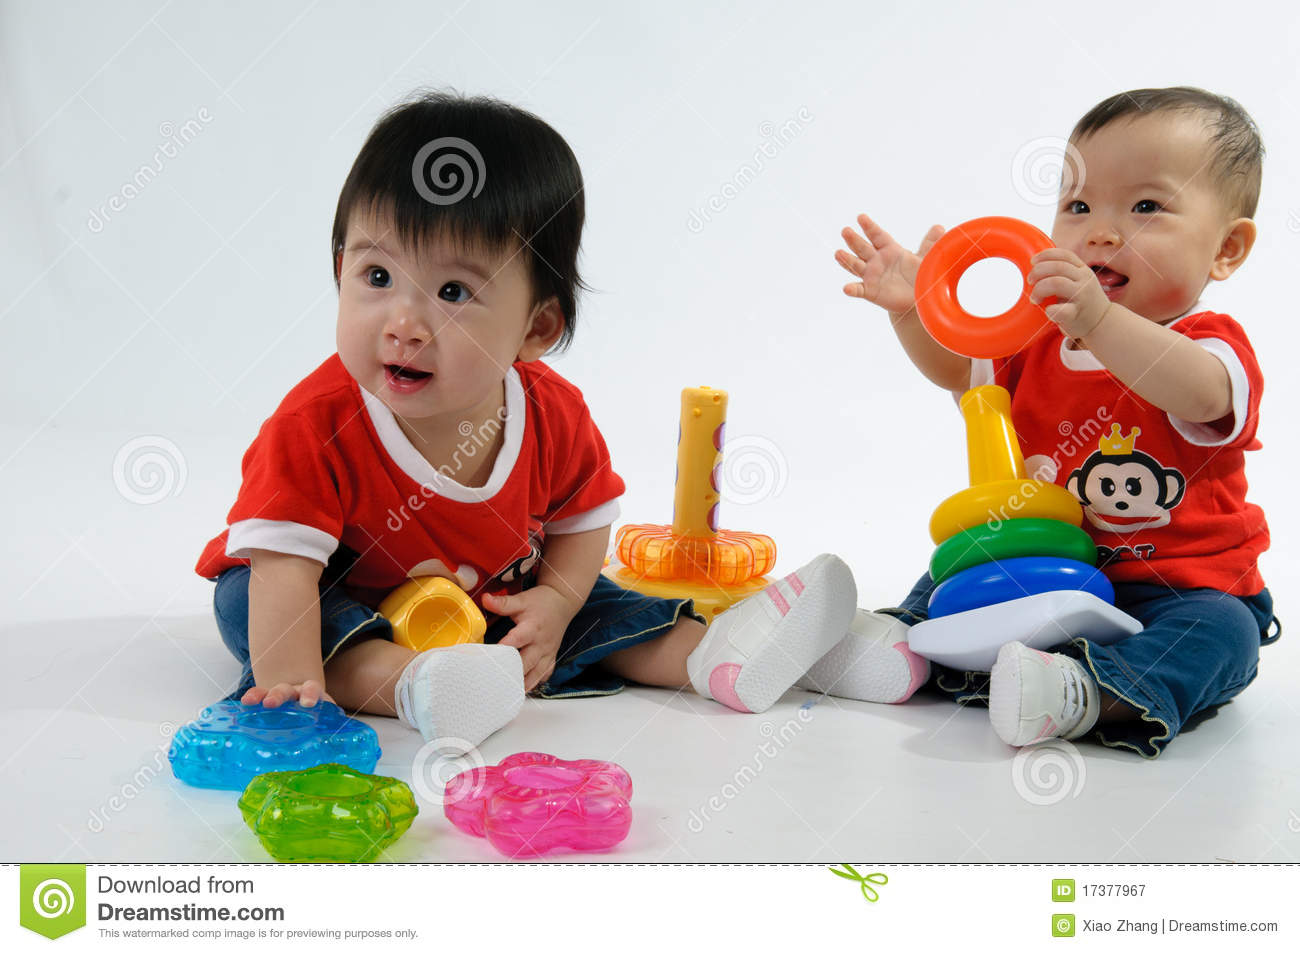 Two Kids Playing Toy Royalty Free Stock Photography - Image: 17377967